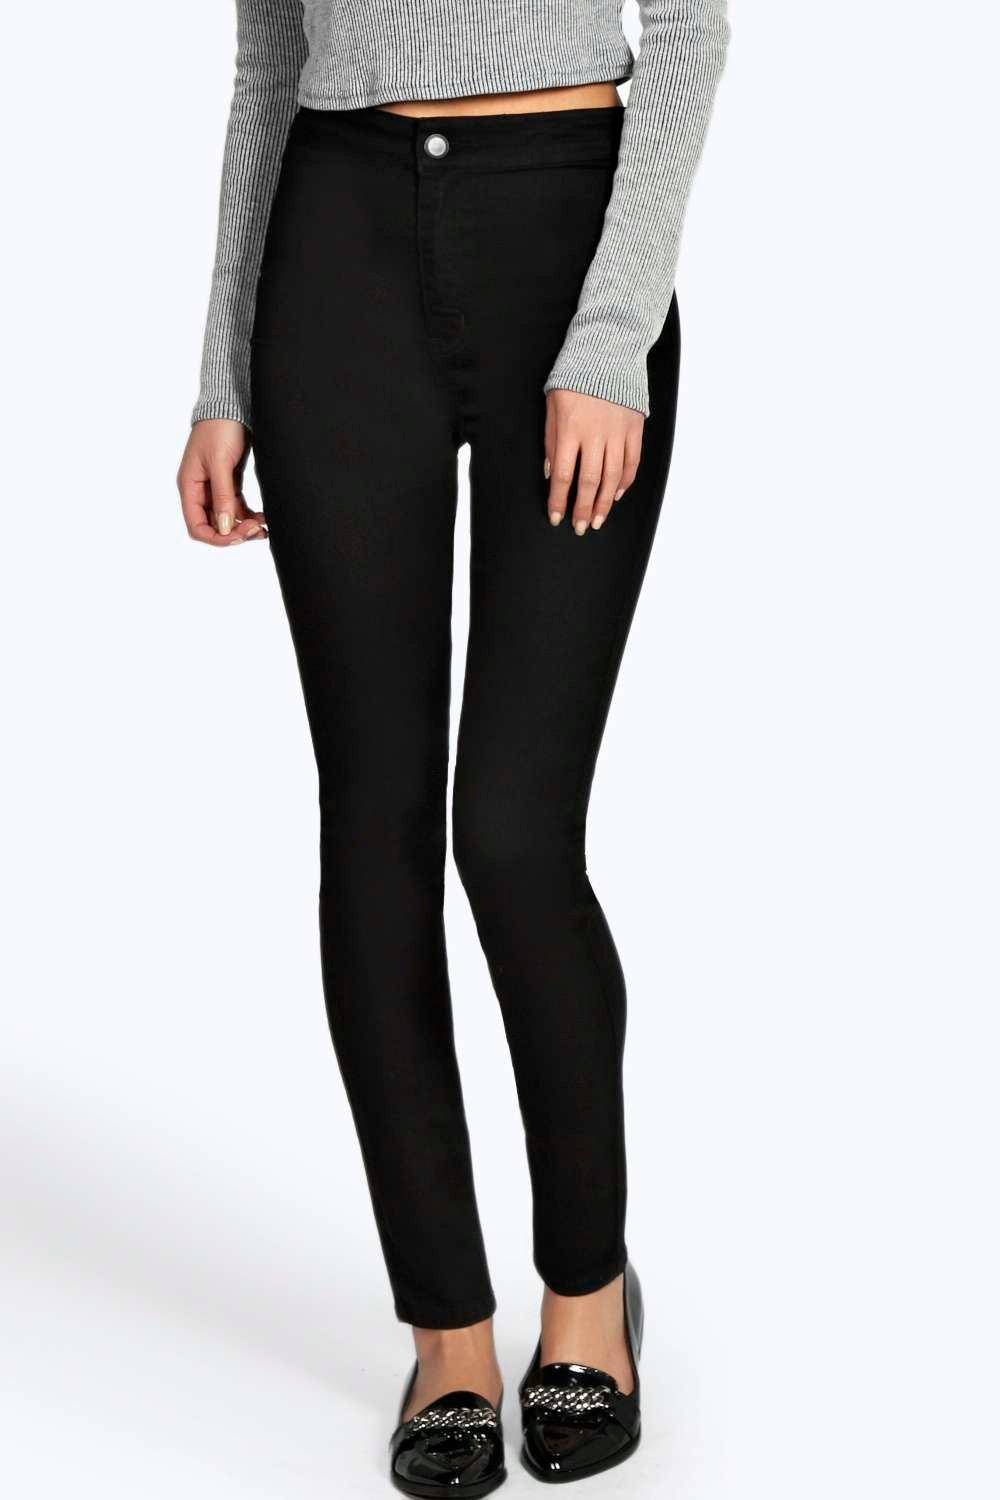 High waisted black skinny jeans h&m – Global fashion jeans collection